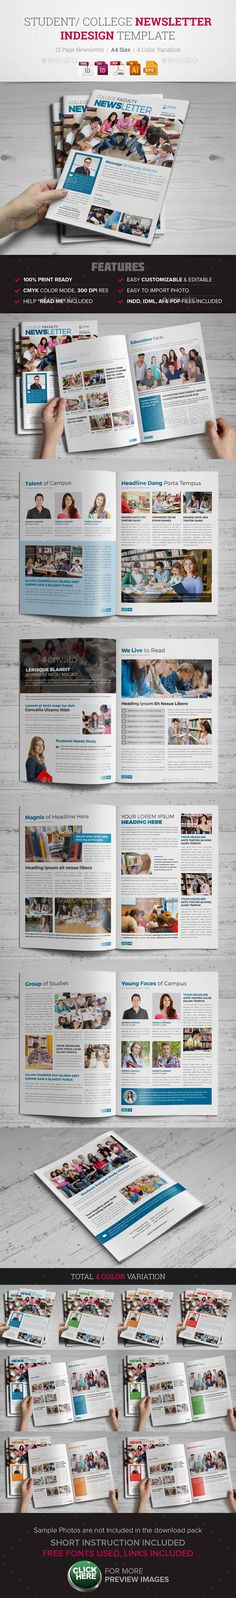 Student College Newsletter Indesign Template #design Download: http://graphicriver.net/item/student-college-newsletter-indesign-template-/12087210?ref=ksioks